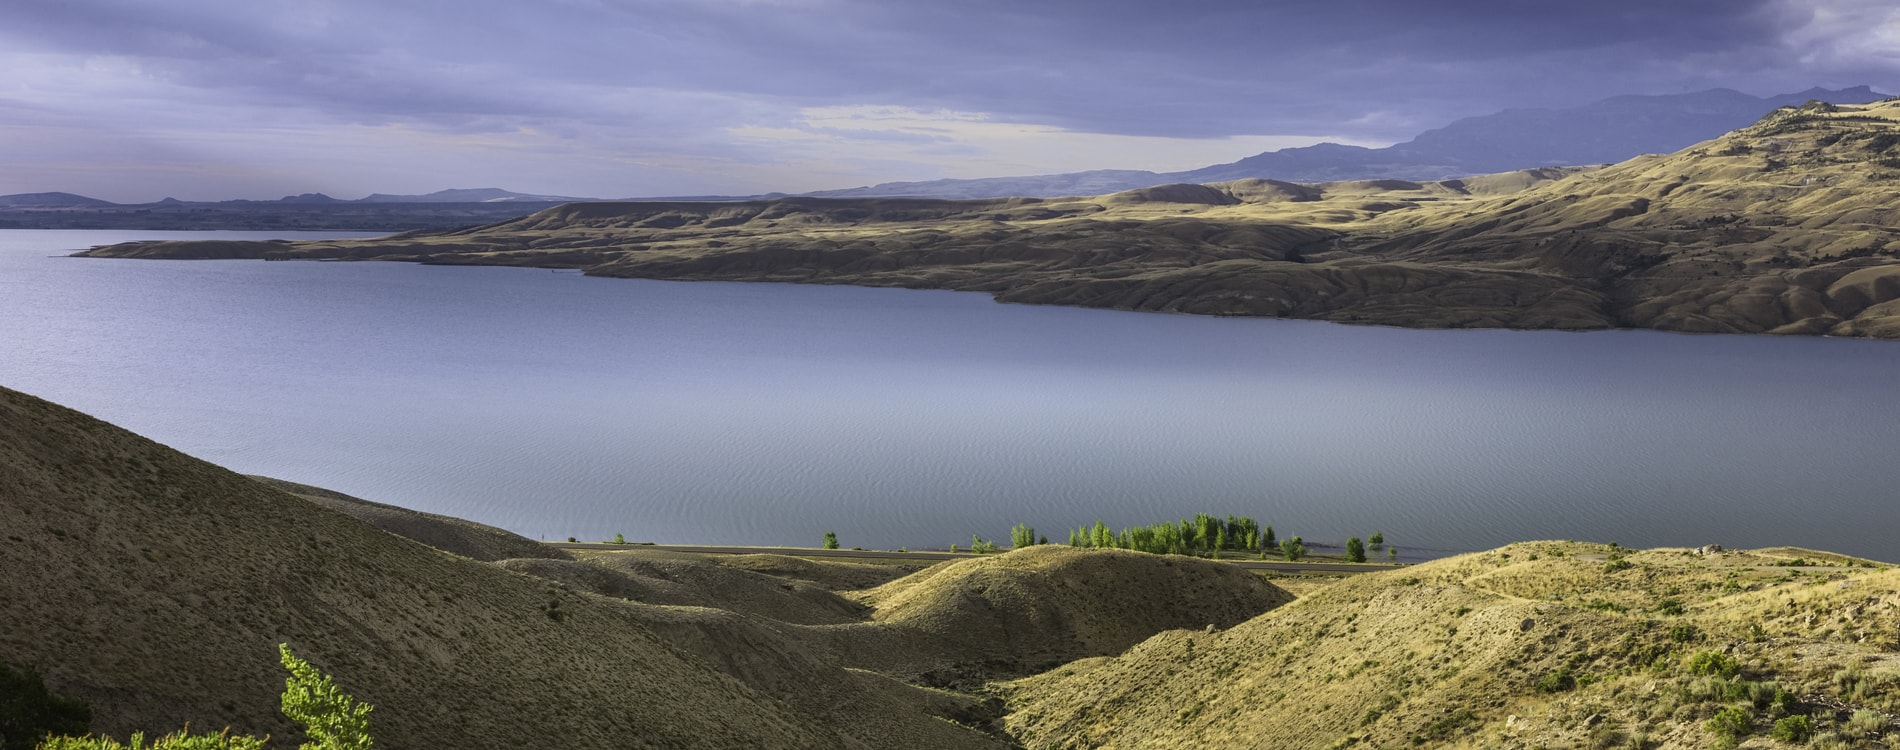 Buffalo Bill Reservoir just west of Cody, Wyoming